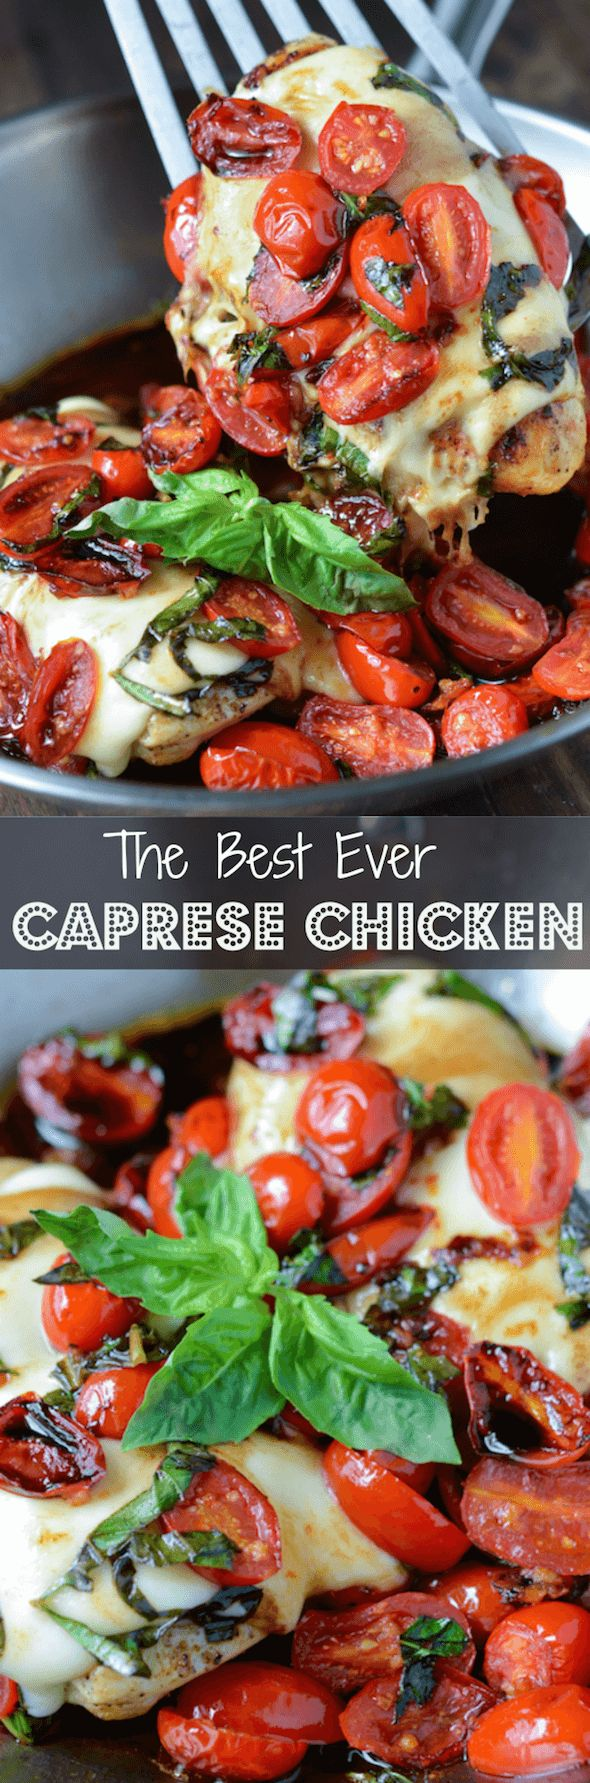 Caprese Chicken - a super quick, full flavored, one skillet weeknight dinner!